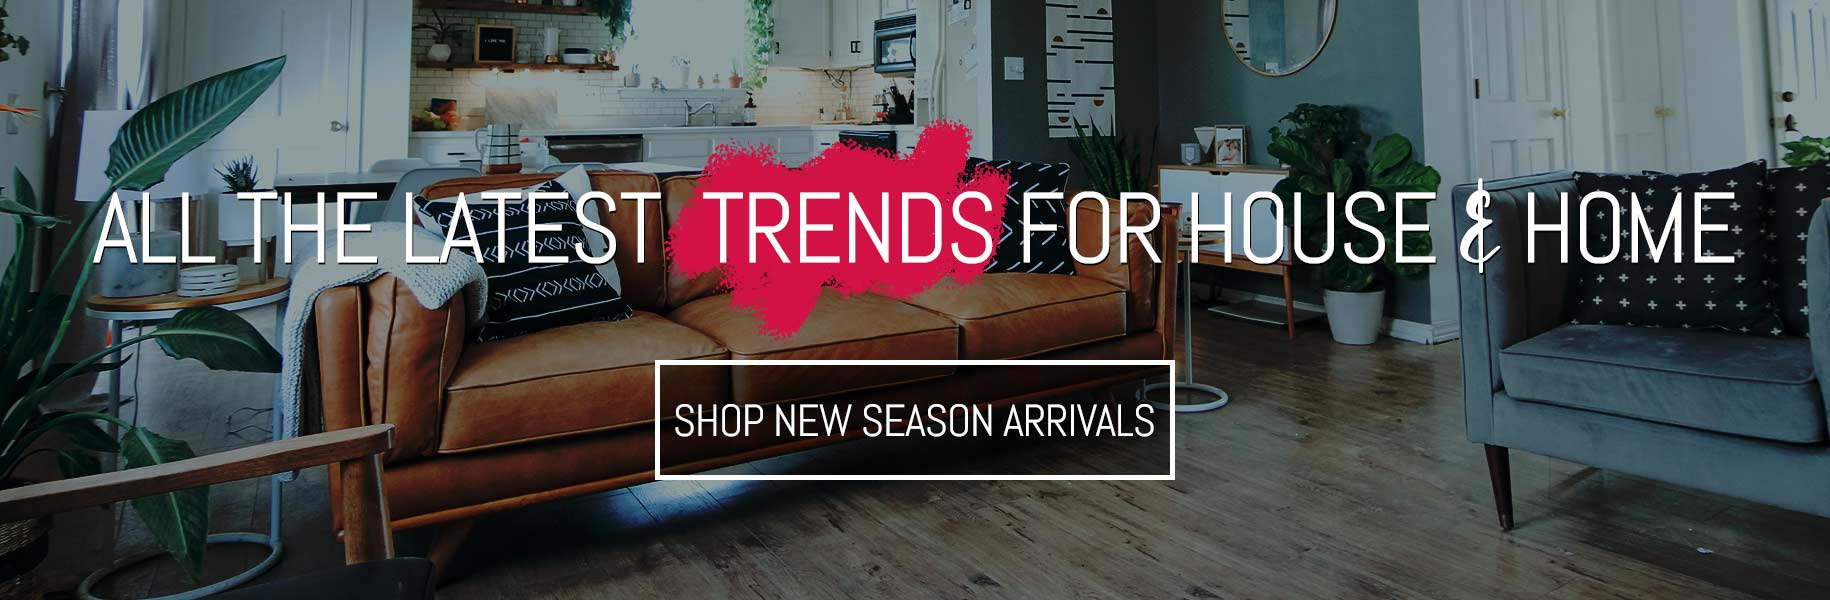 All the Latest Trends for House and Home Shop New Season Arrivals at Stakelums